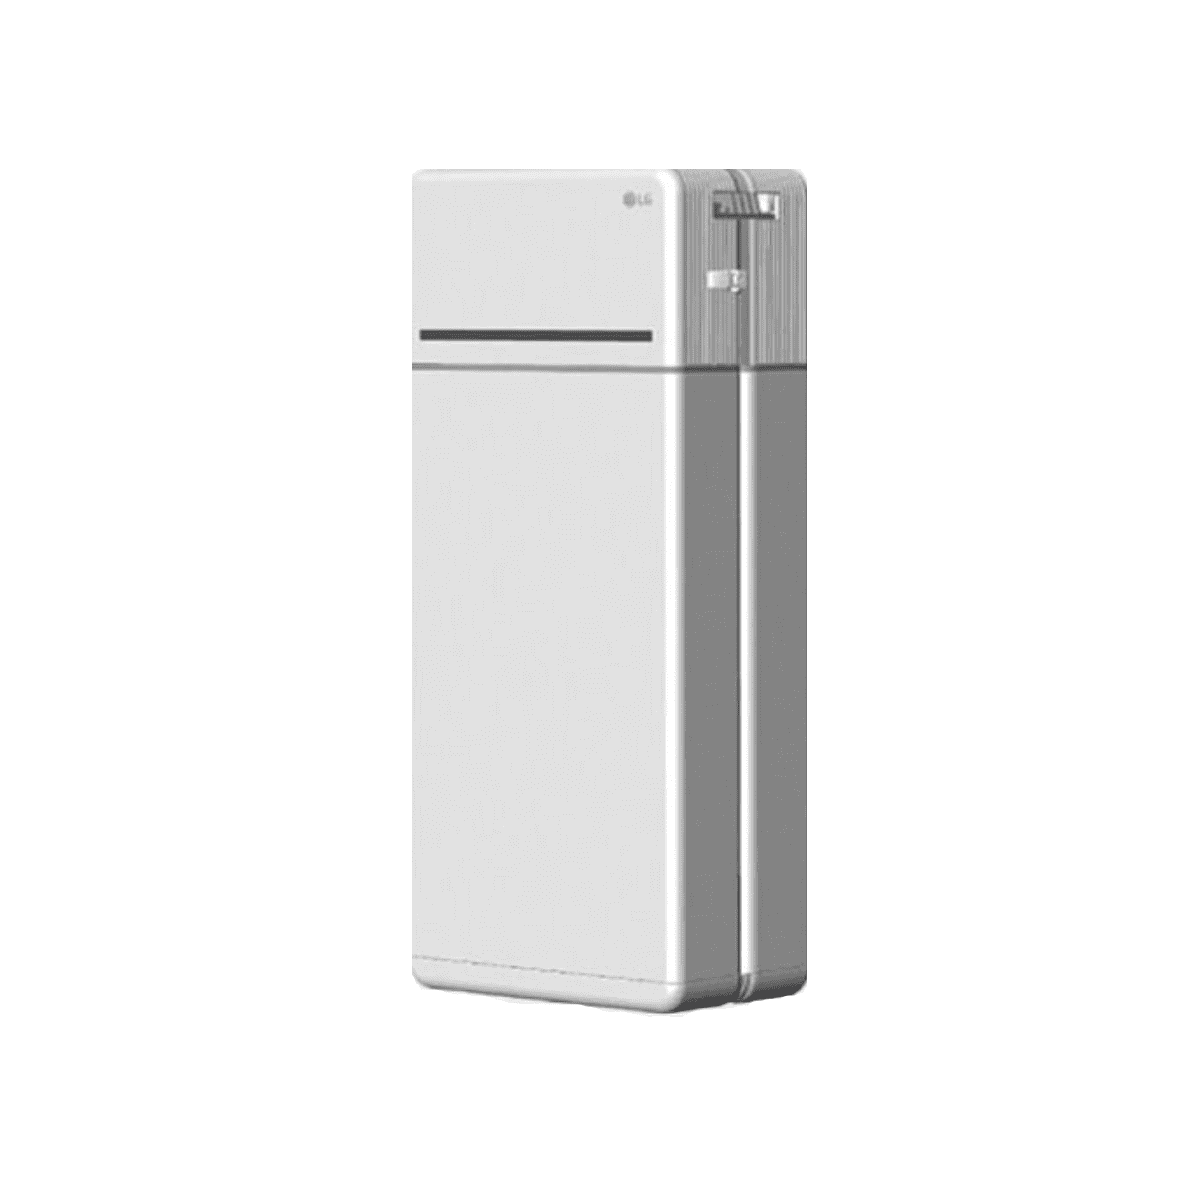 LG Chem RESU 16H Lithium Ion 16kWh Solar Battery Storage for Sale